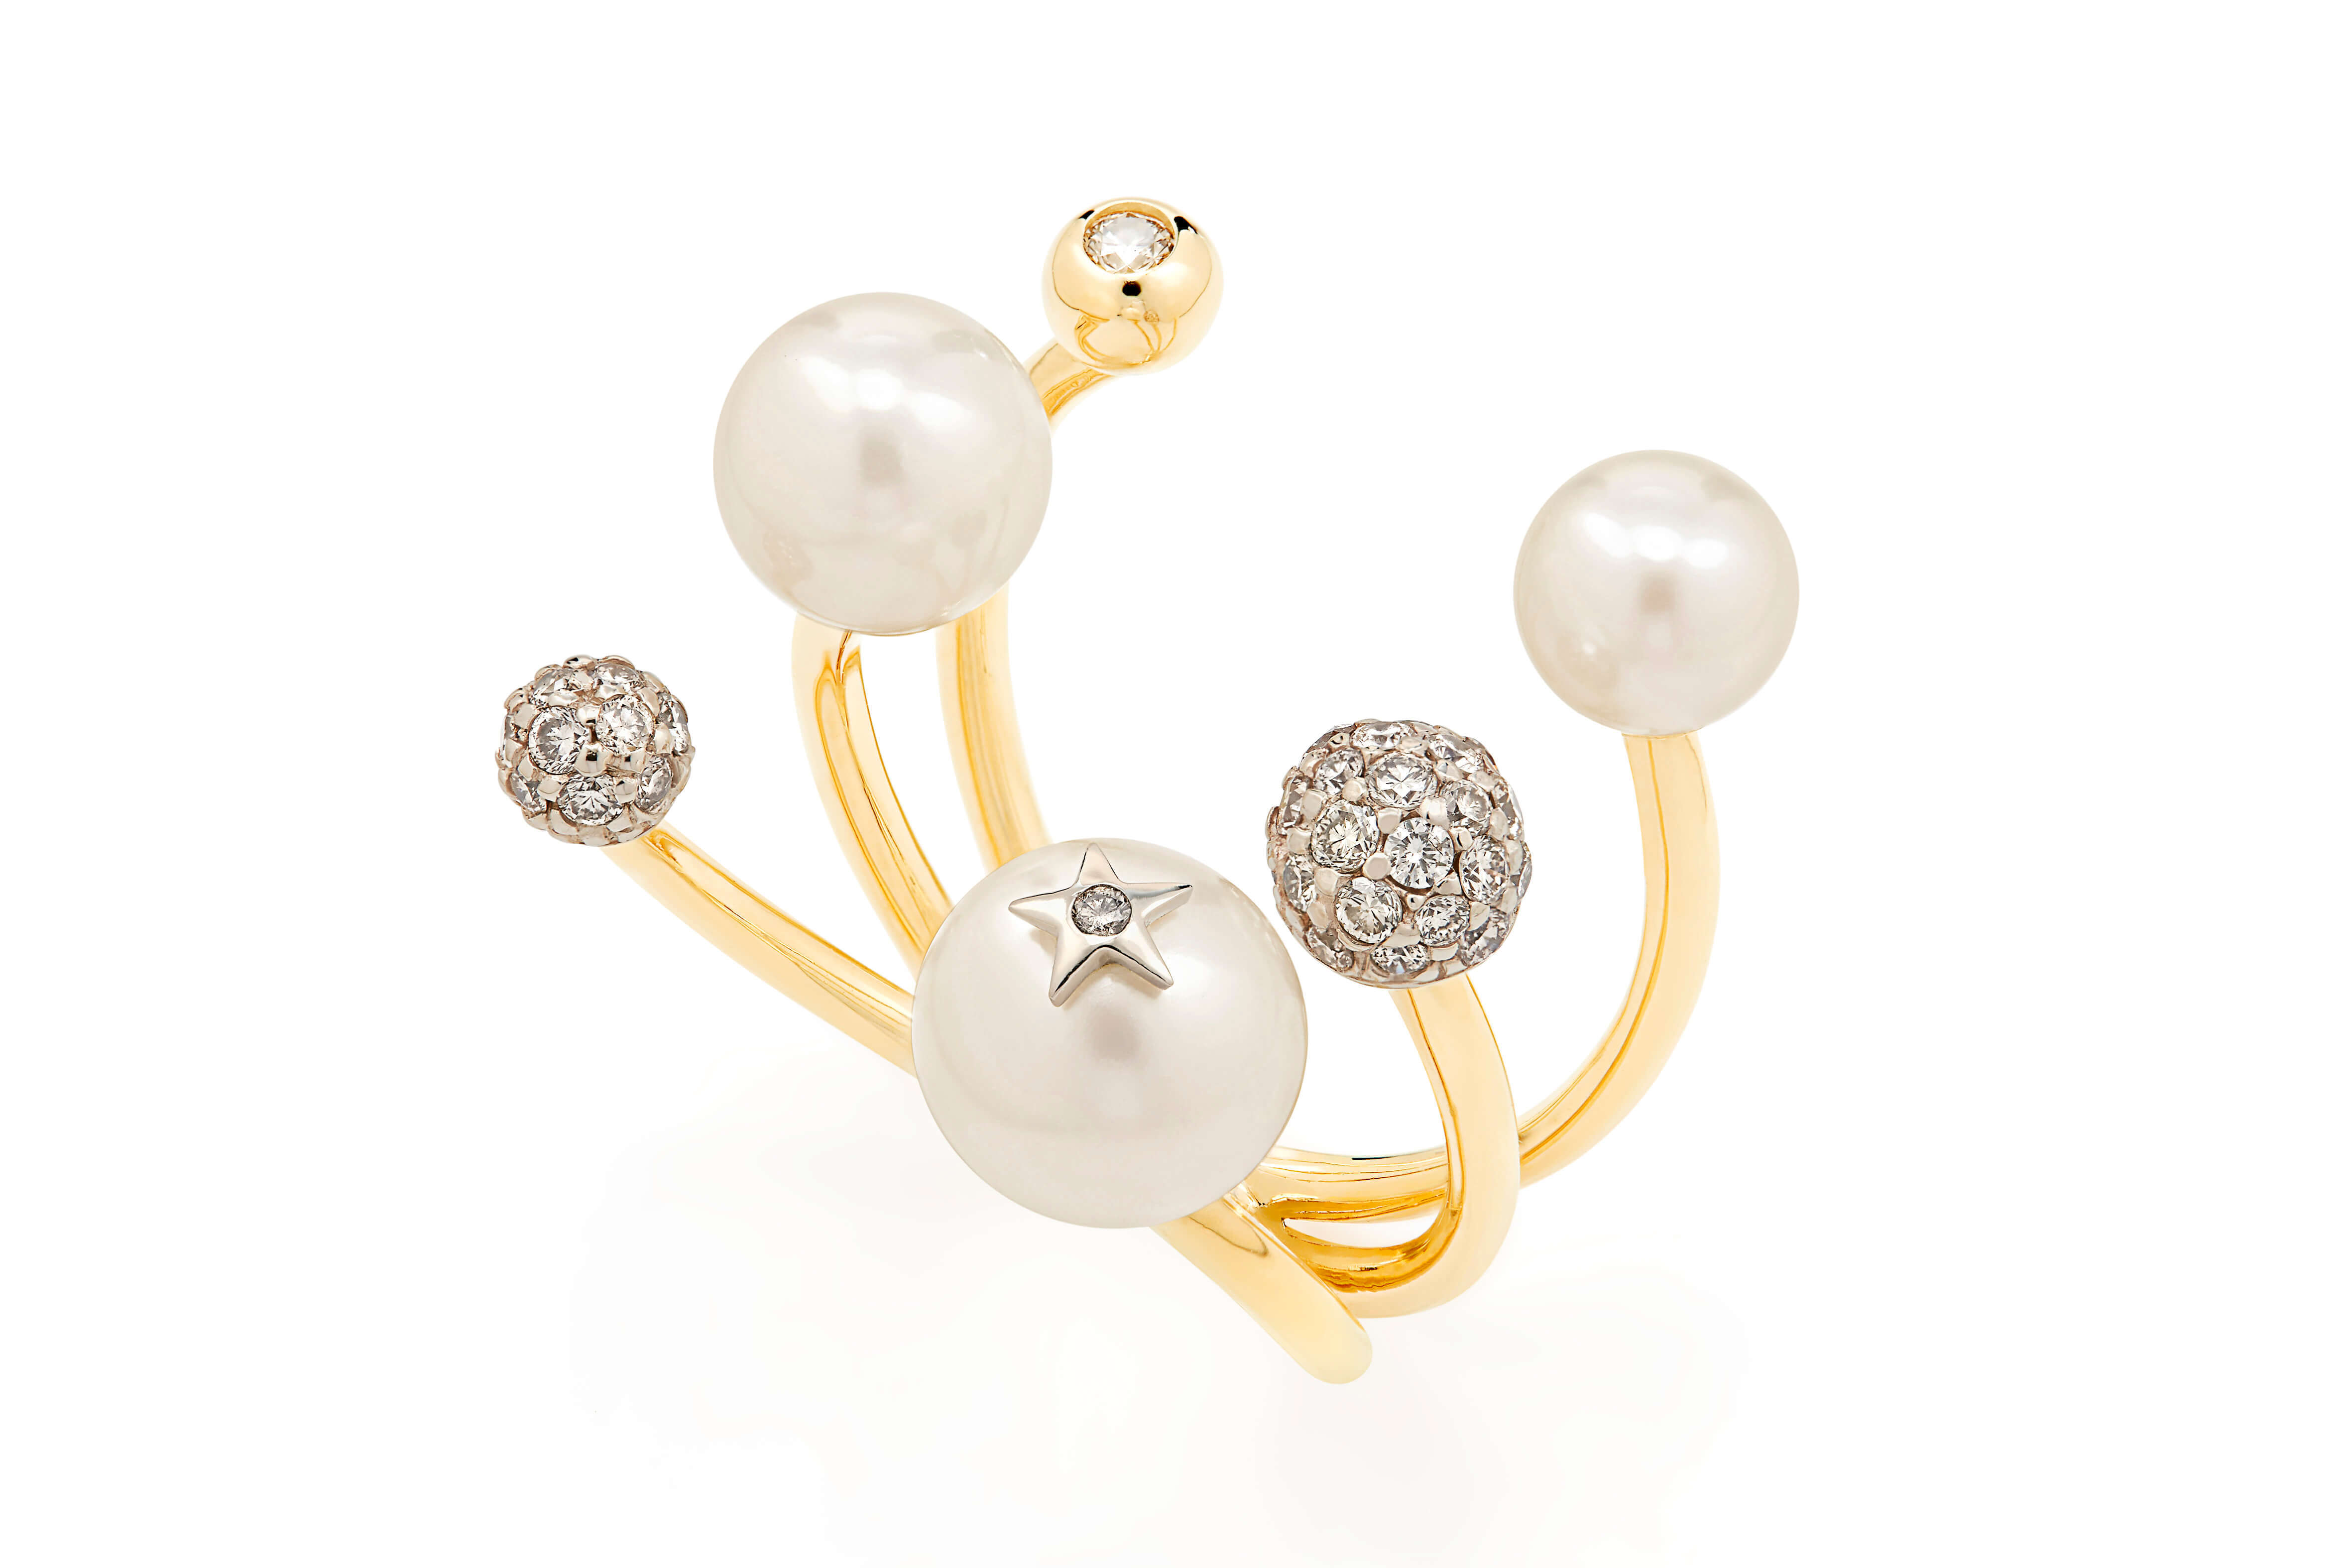 Pearls_of_Genesis_H.Stern_-_ring_in_18K_gold,_pearls_and_diamonds_(A2P_205199)